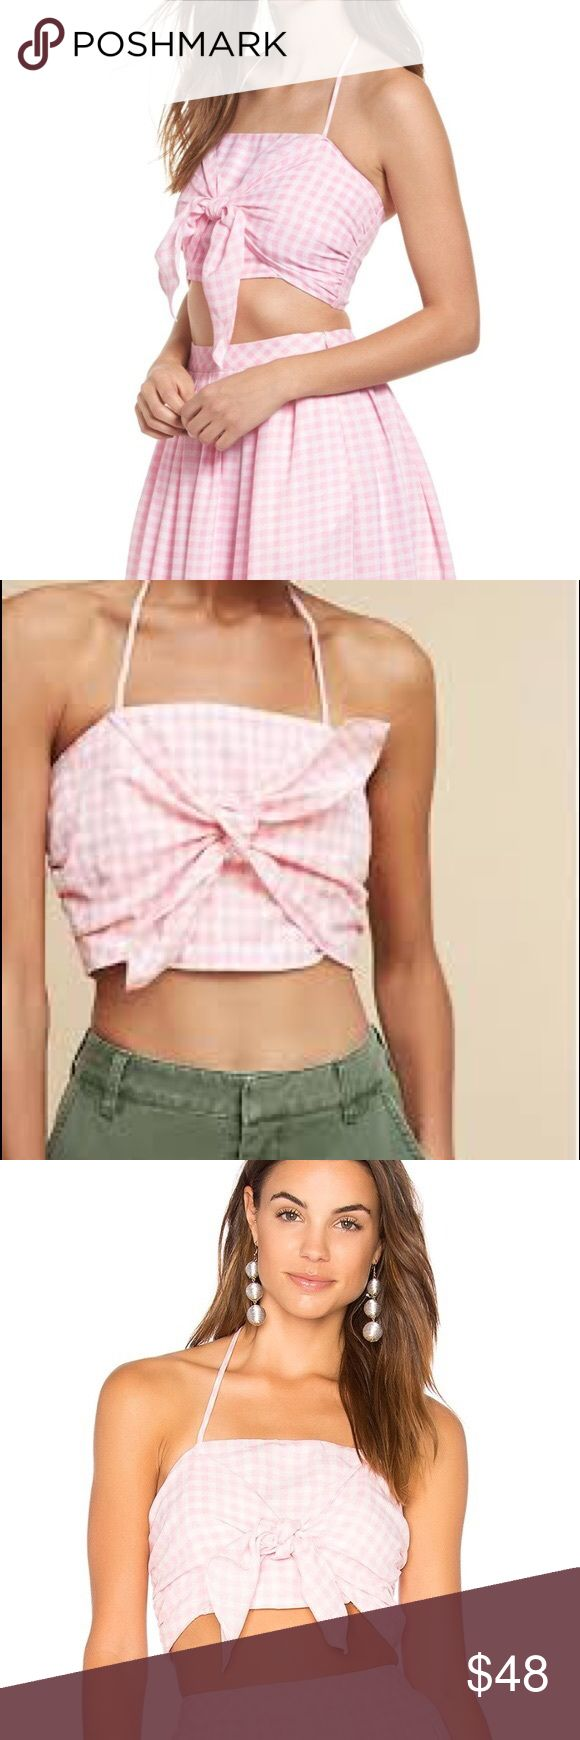 •Anthropologie• JOA Gingham Bow Crop Top Adorable hot pink crop top! Brand new with tags! Anthropologie Tops